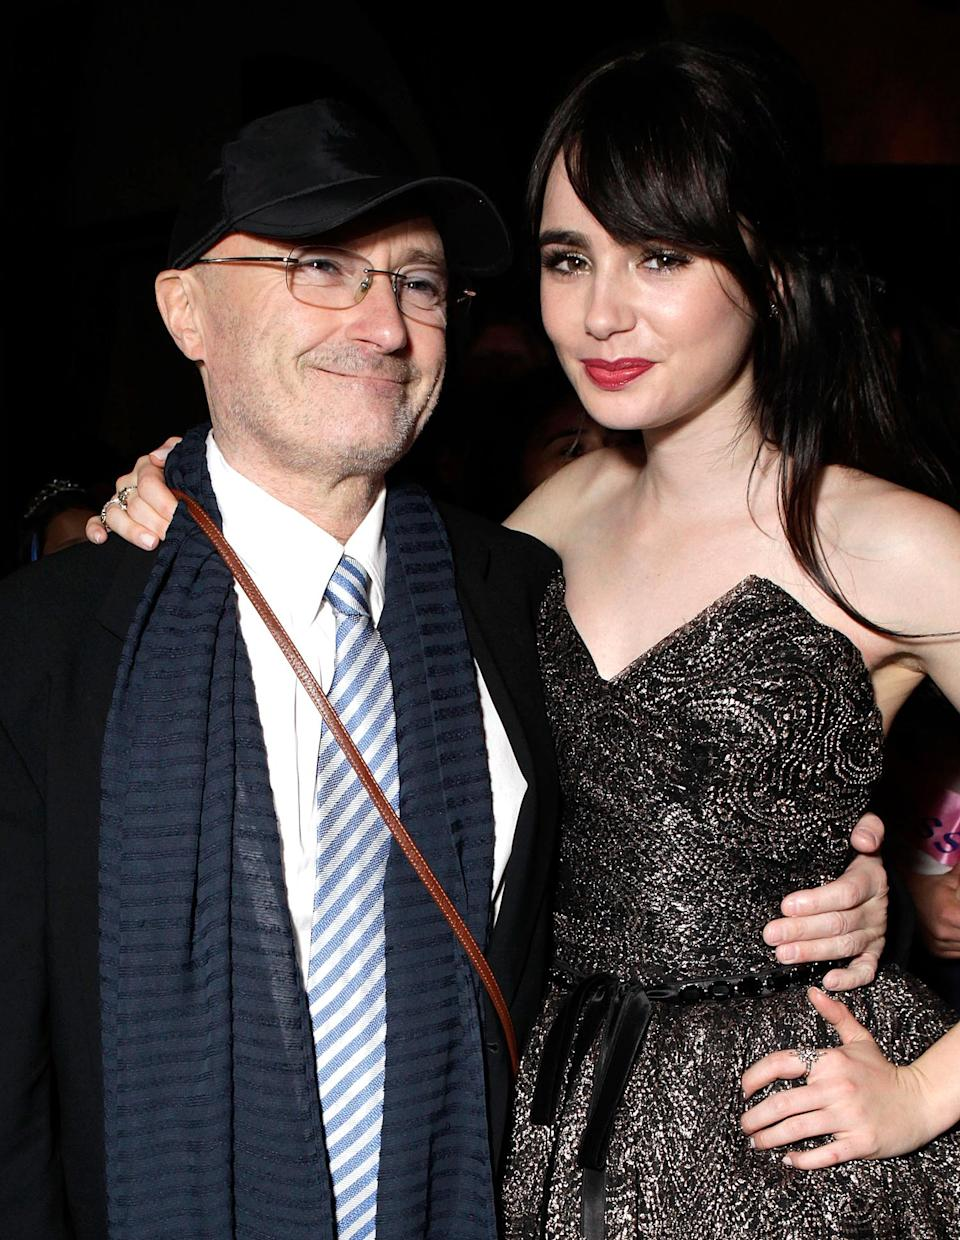 """<p>The actress said her rocker dad was delighted to hear her sing in <em>Rules Don't Apply.</em></p> <p>""""I didn't tell him I was doing it singing) until I sent him the trailer,"""" Lily said, according to <em><a href=""""https://www.music-news.com/news/UK/101855/Phil-Collins-very-proud-of-daughter-Lily-s-singing-in-new-movie"""" rel=""""nofollow noopener"""" target=""""_blank"""" data-ylk=""""slk:Music News"""" class=""""link rapid-noclick-resp"""">Music News</a></em>. """"So I sent him the newest trailer of just me singing, and he got back and he was like, 'Ugh, utterly fabulous!' He was very proud. He was really, really excited.""""</p>"""